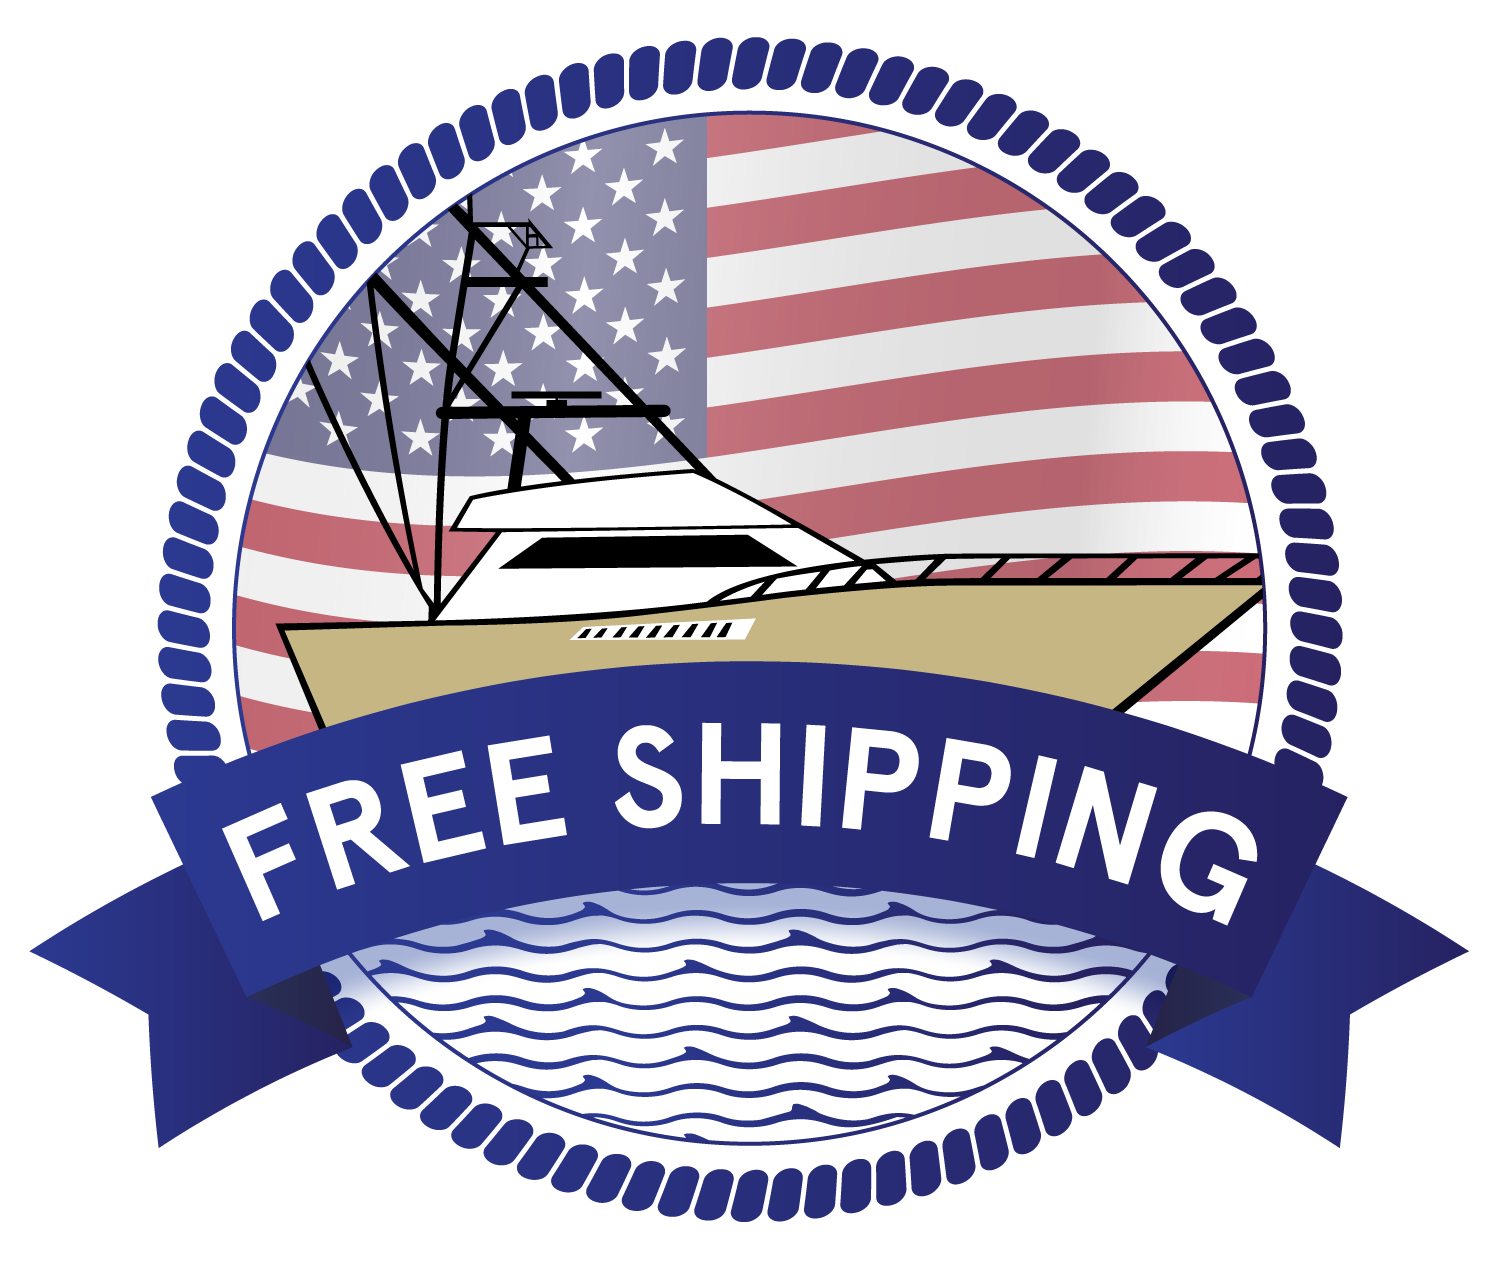 seatech-free-shipping-logo-v4.png